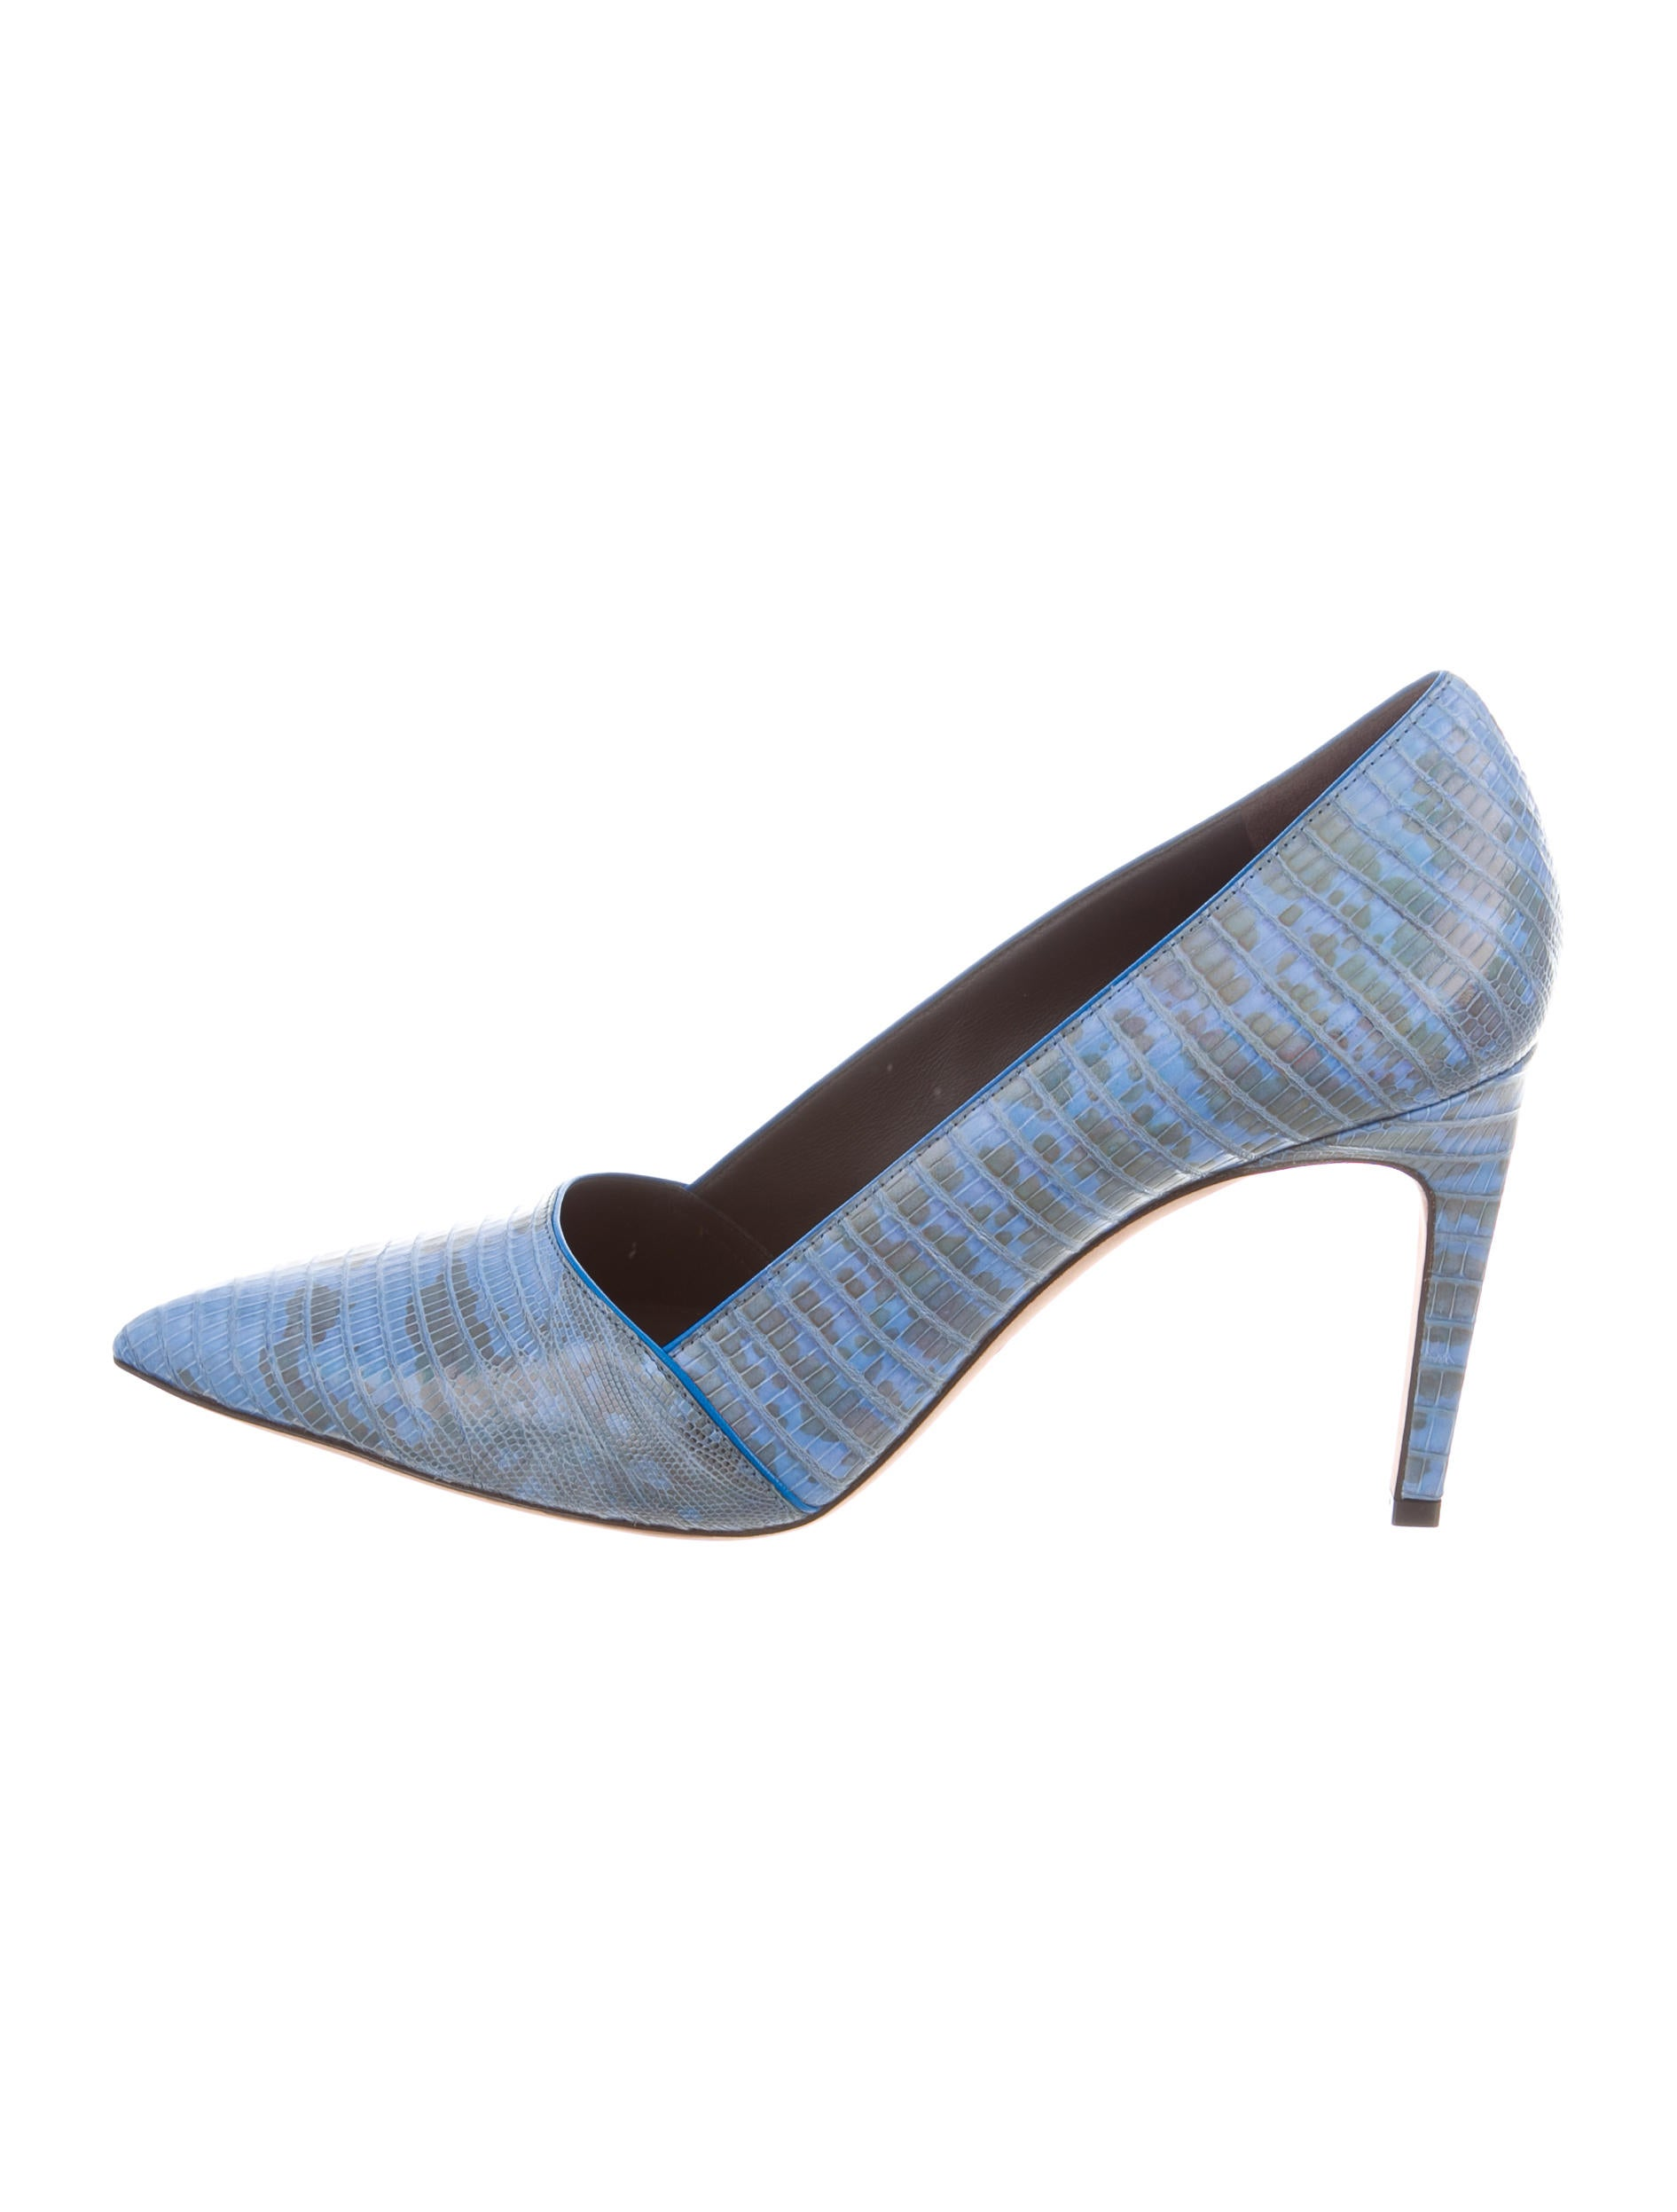 Calvin Klein Collection Iridescent Lizard Pumps w/ Tags affordable online 4yg0EdJ